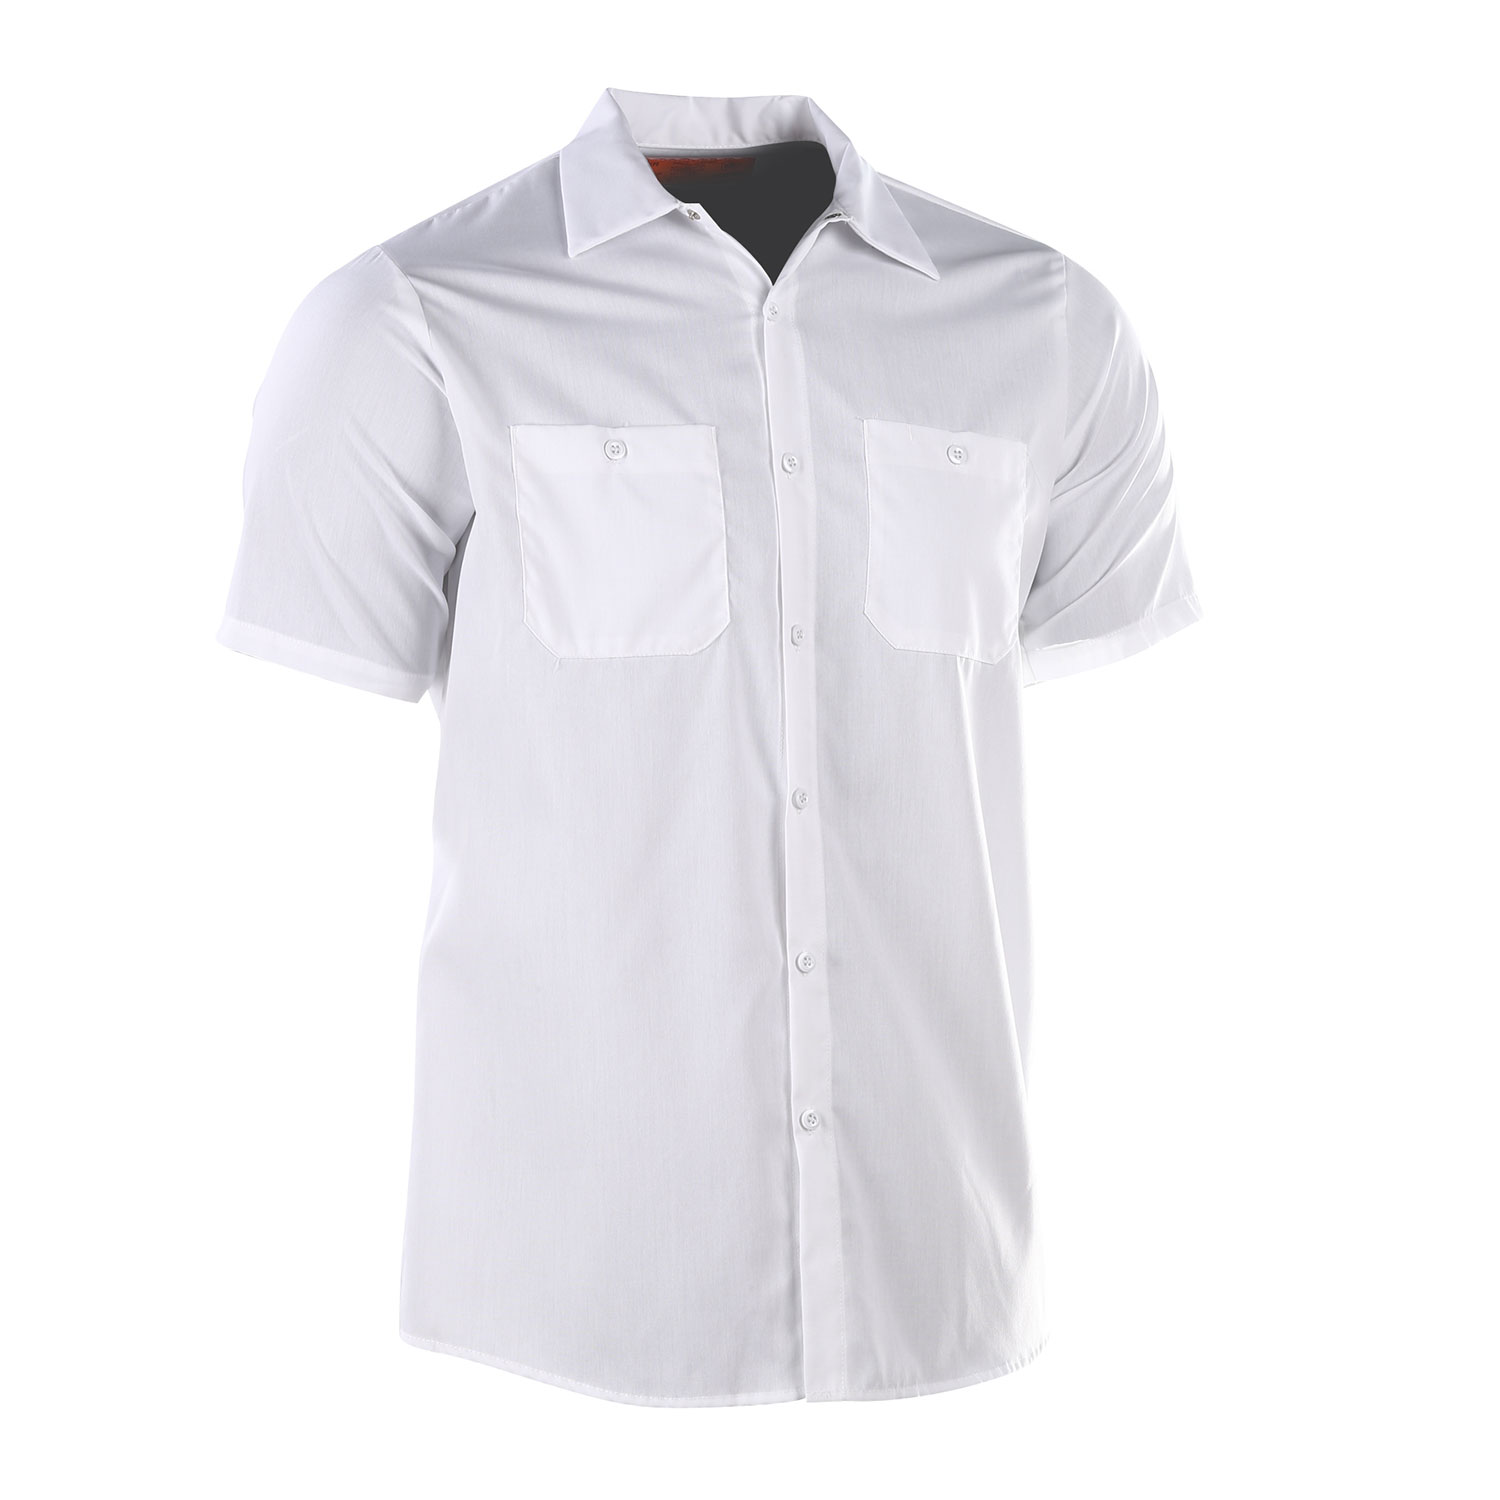 Galls Short Sleeve Shirts